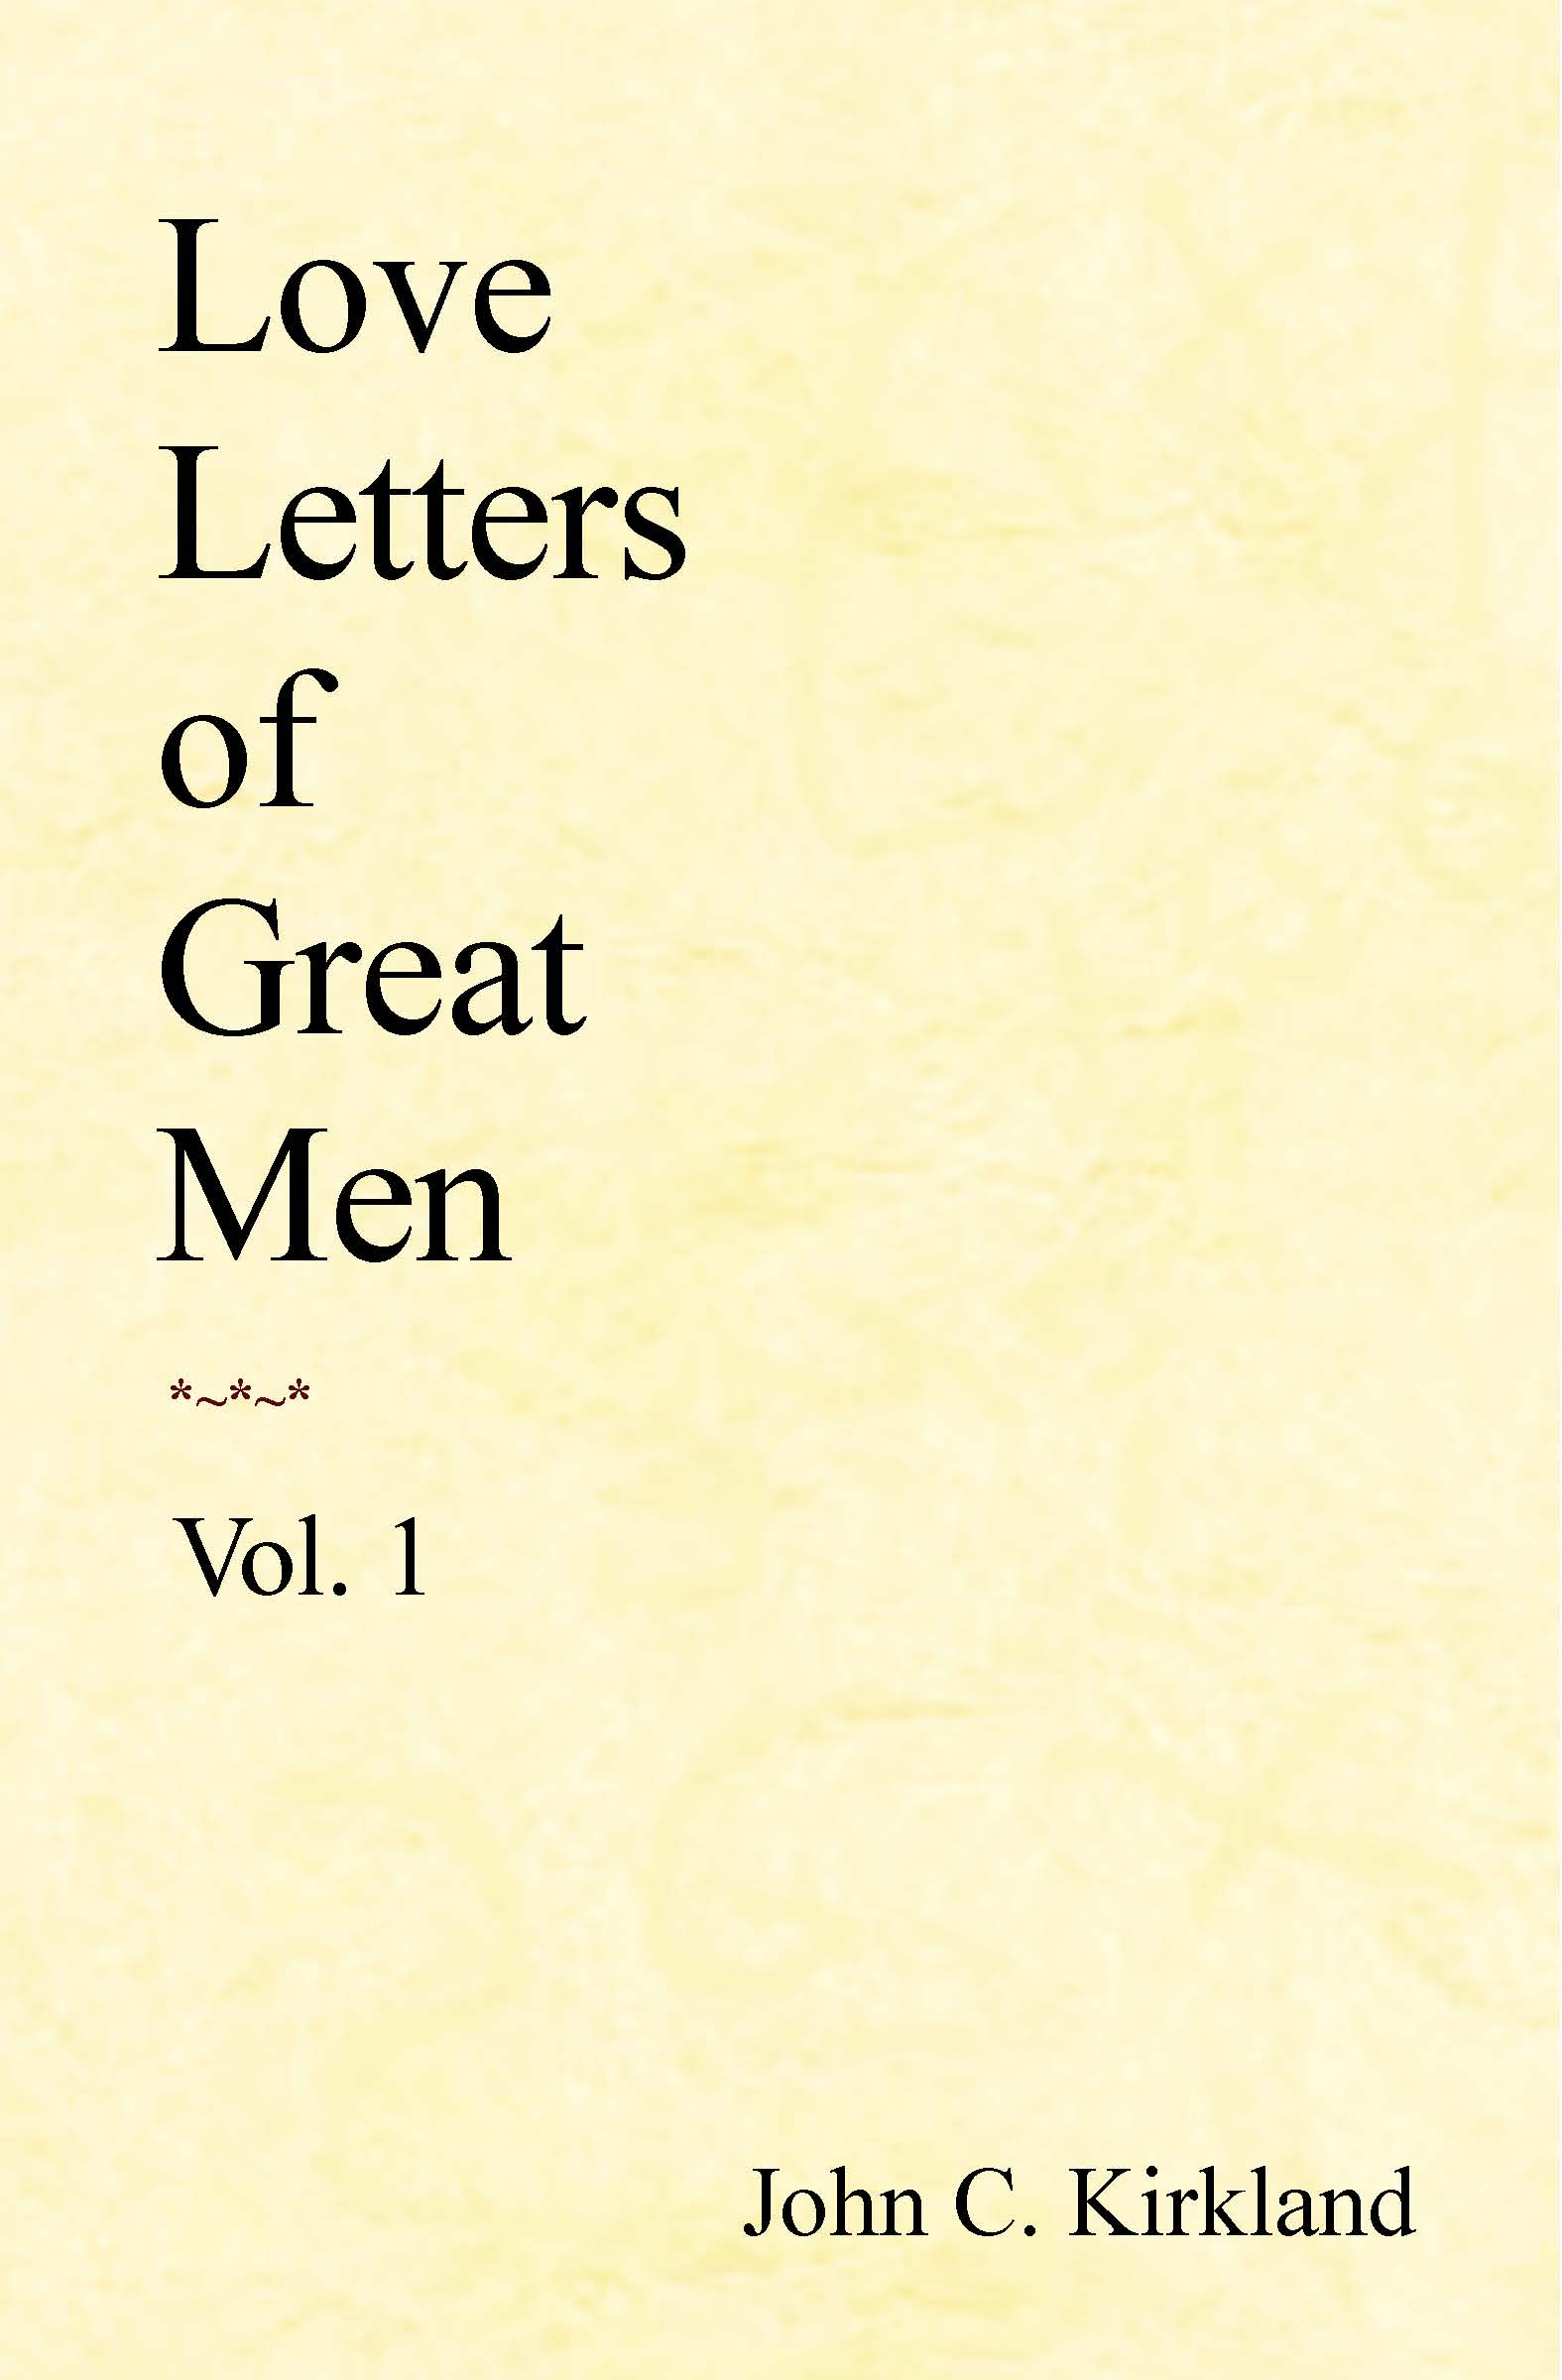 File:Love Letters of Great Men.jpg - Wikimedia Commons